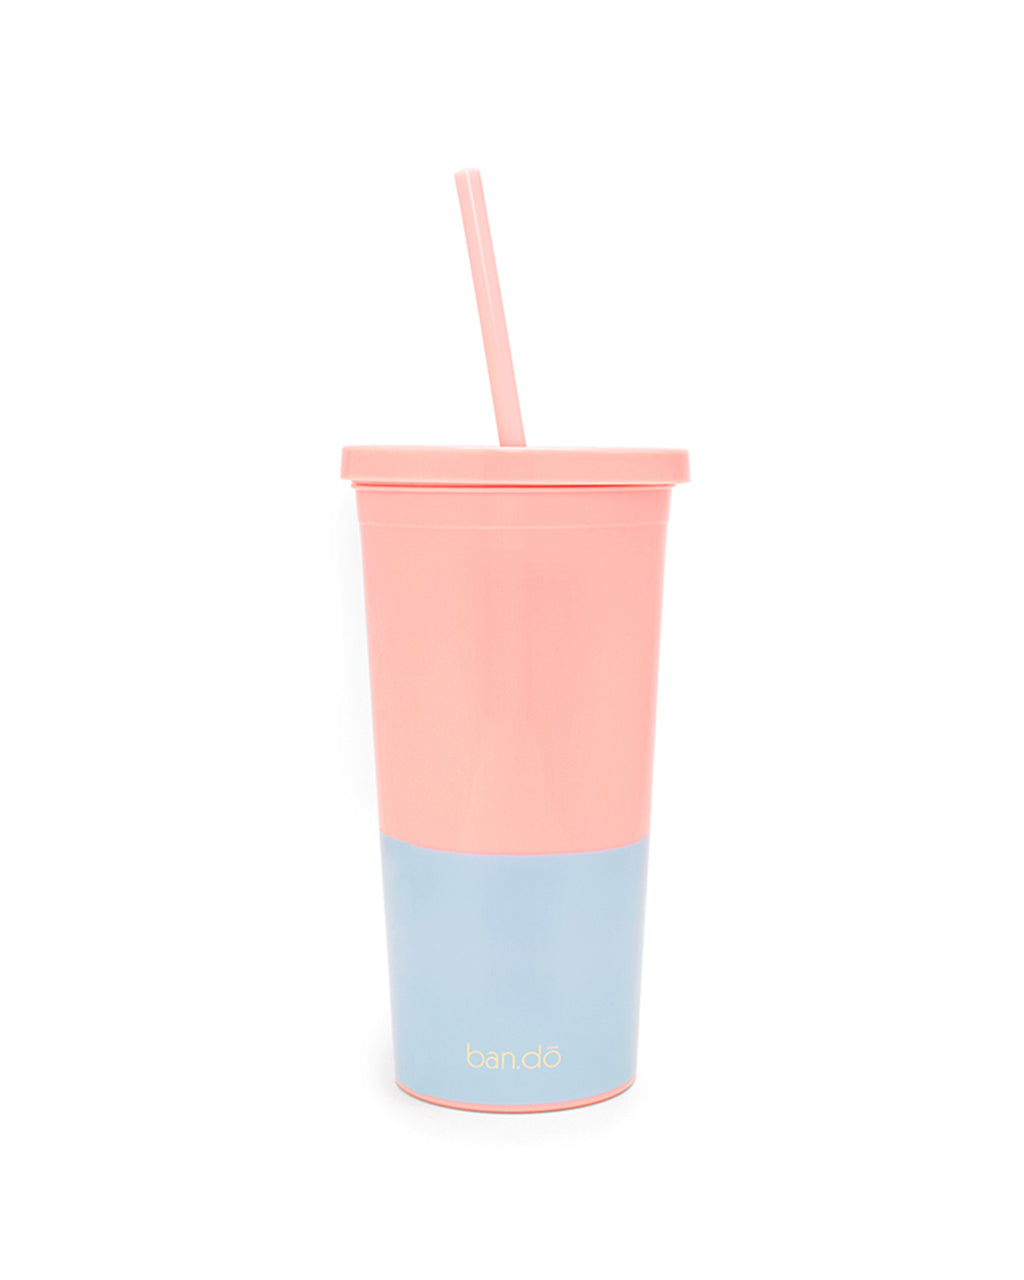 back of cup with straw, with pink top and blue lower portion